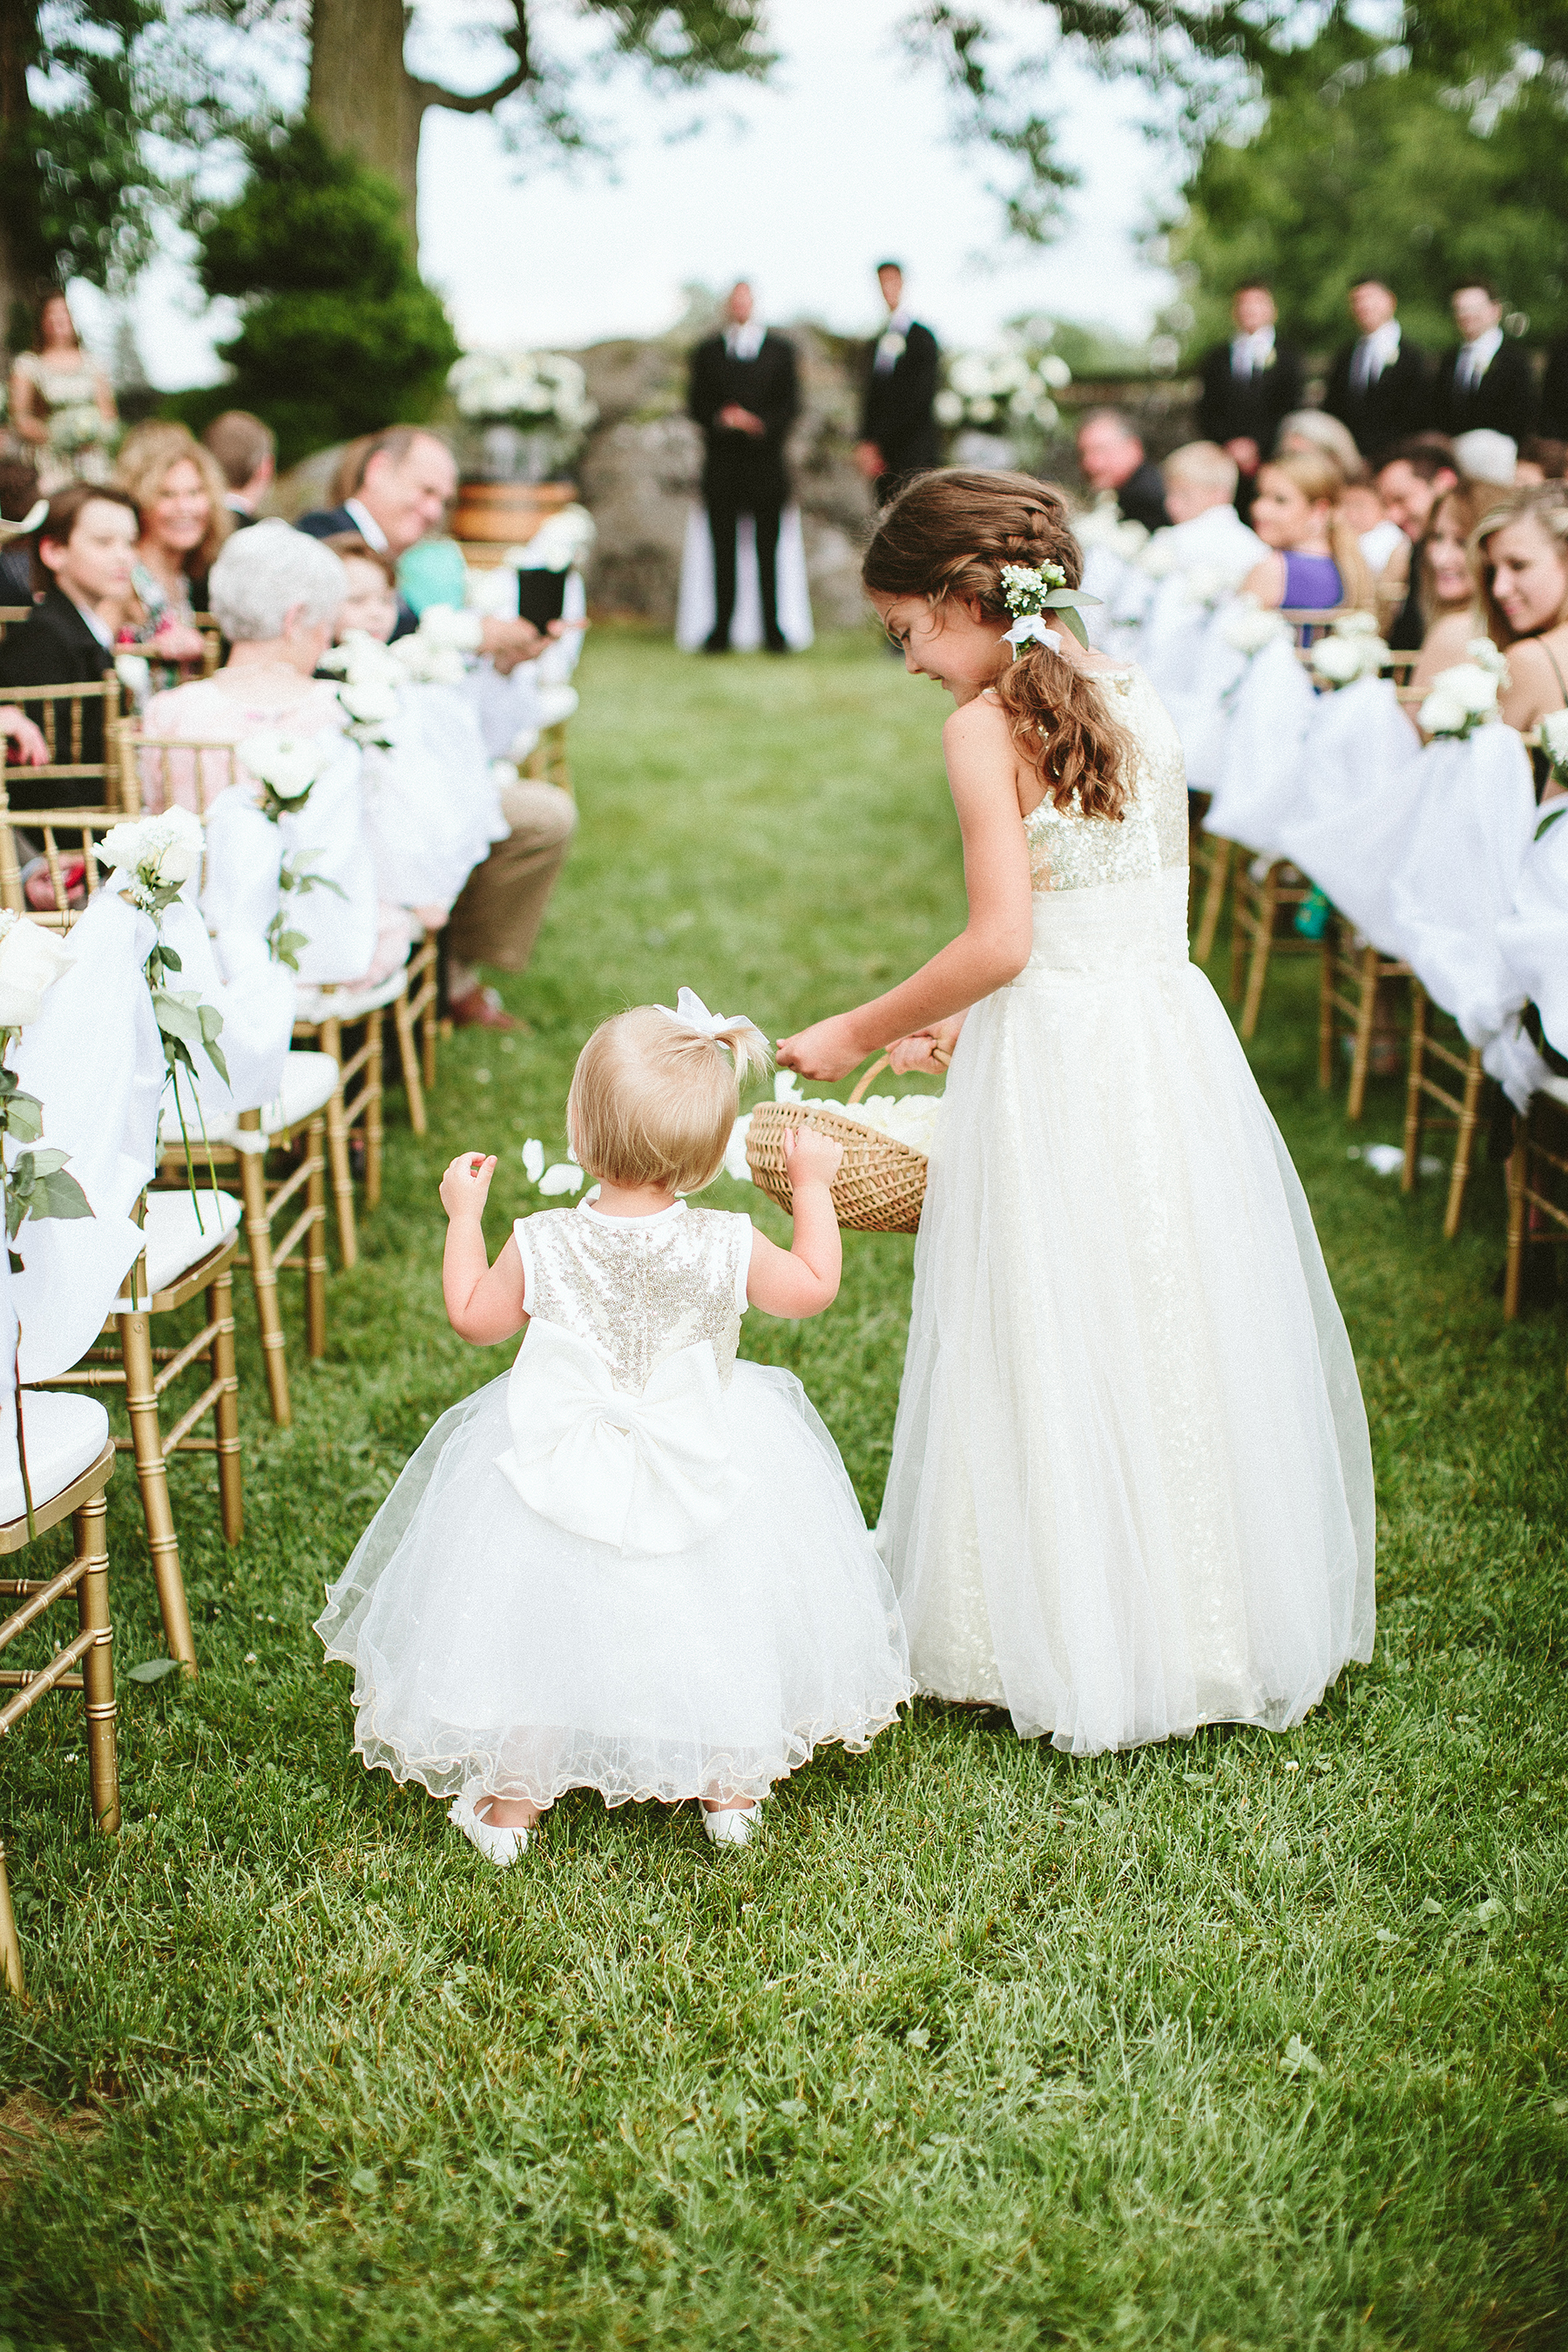 Read This Before Asking Your Flower Girl to Toss Petals Down the Aisle